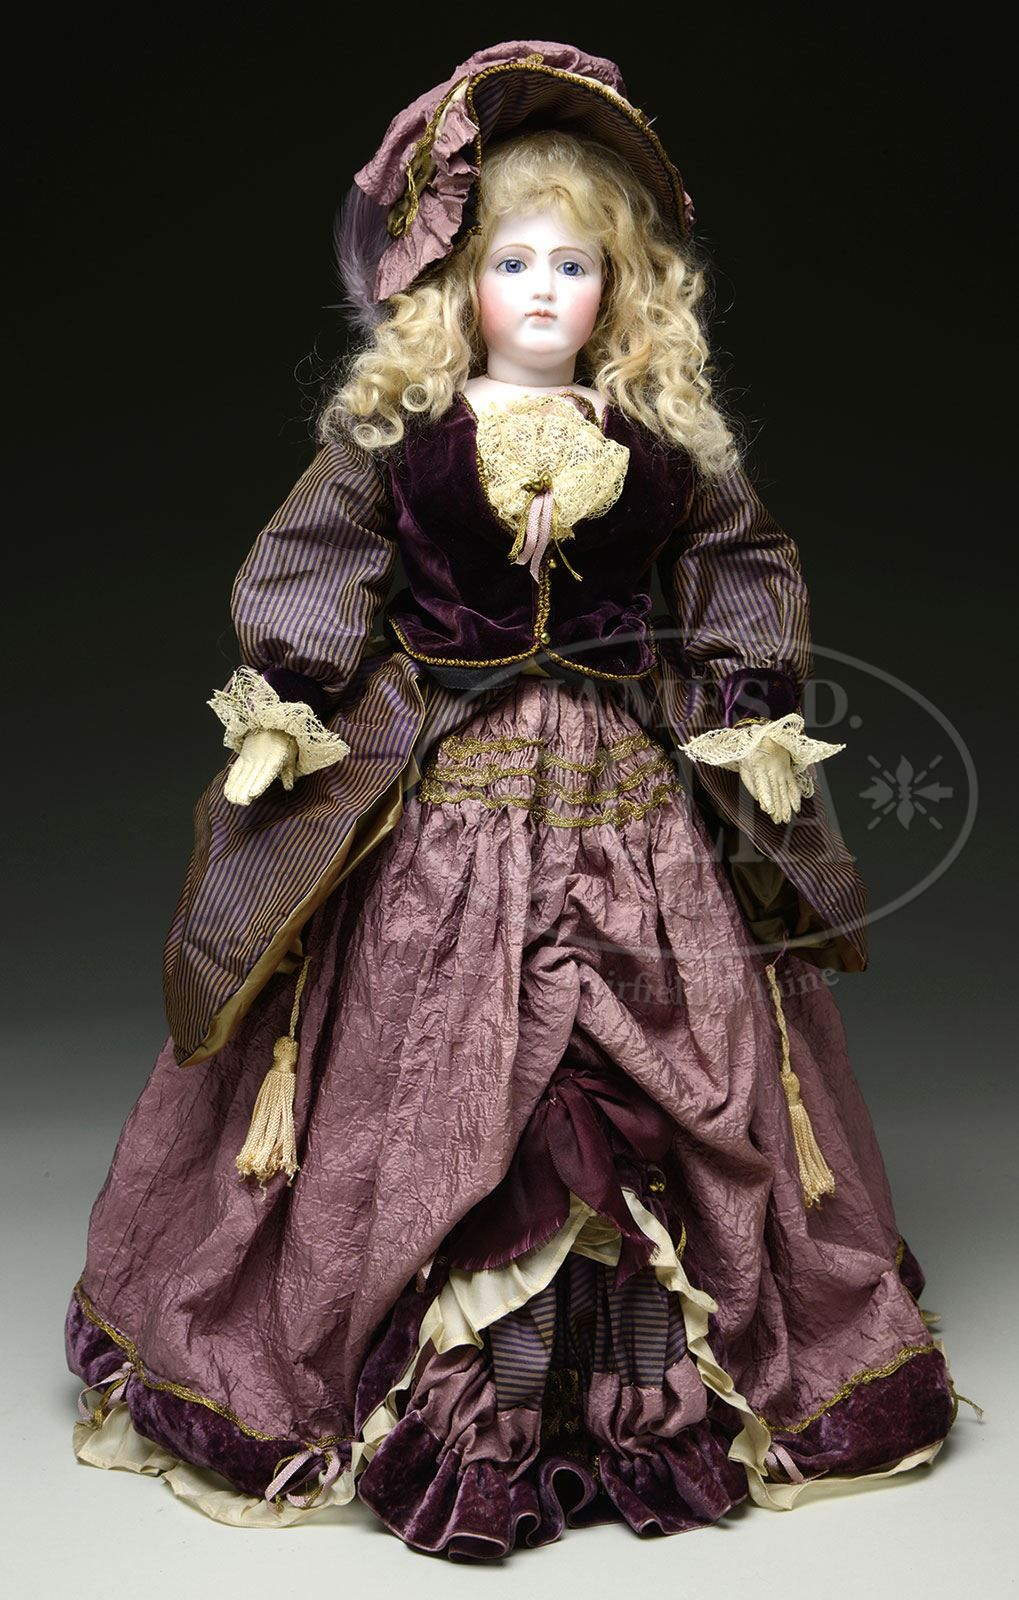 LOVELY FASHION DOLL ATTRIBUTED TO JUMEAU.